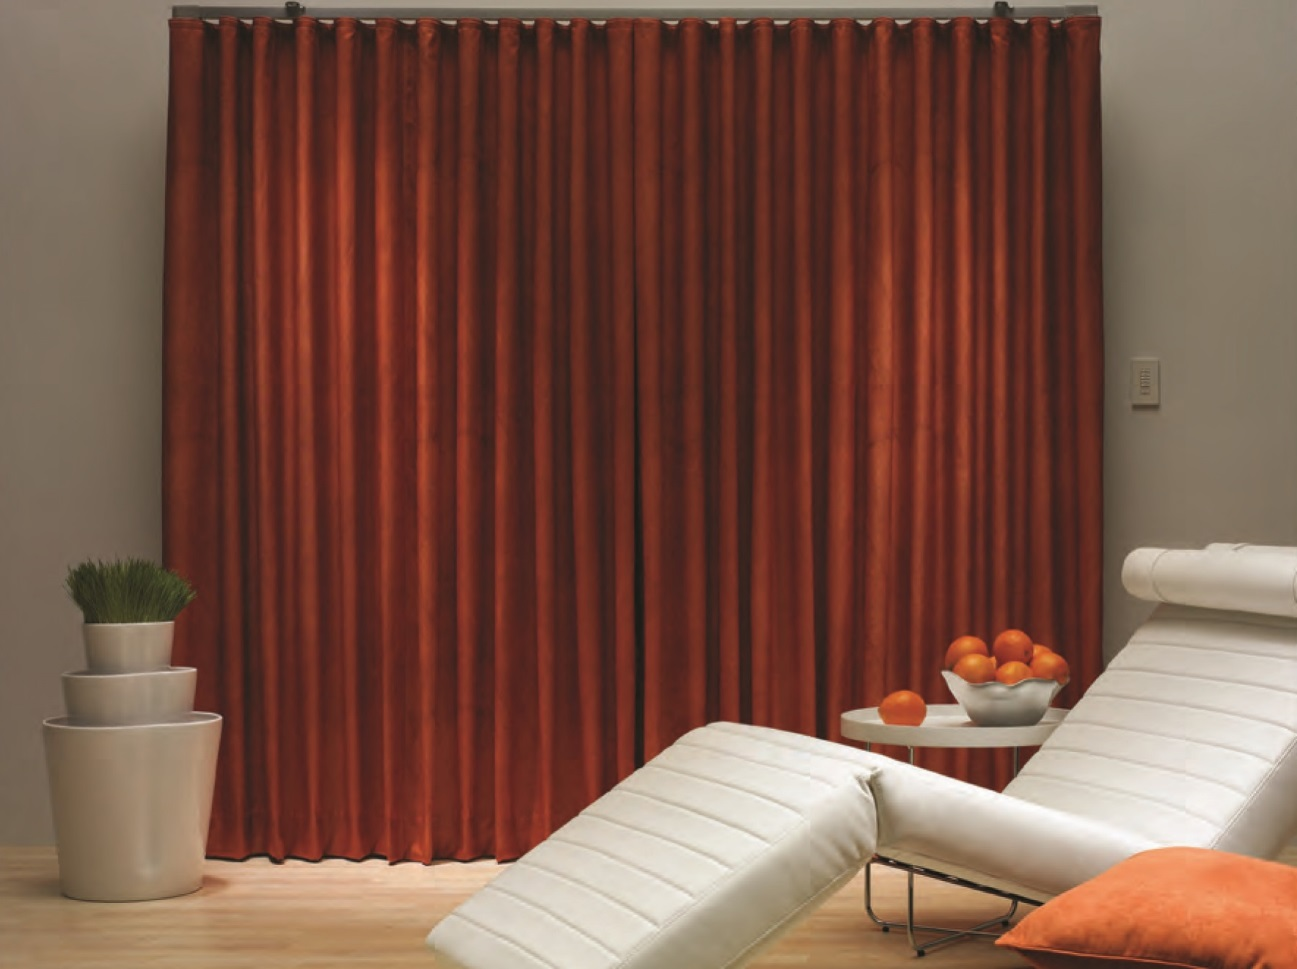 6 Fun Facts About Lutron Motorized Shades